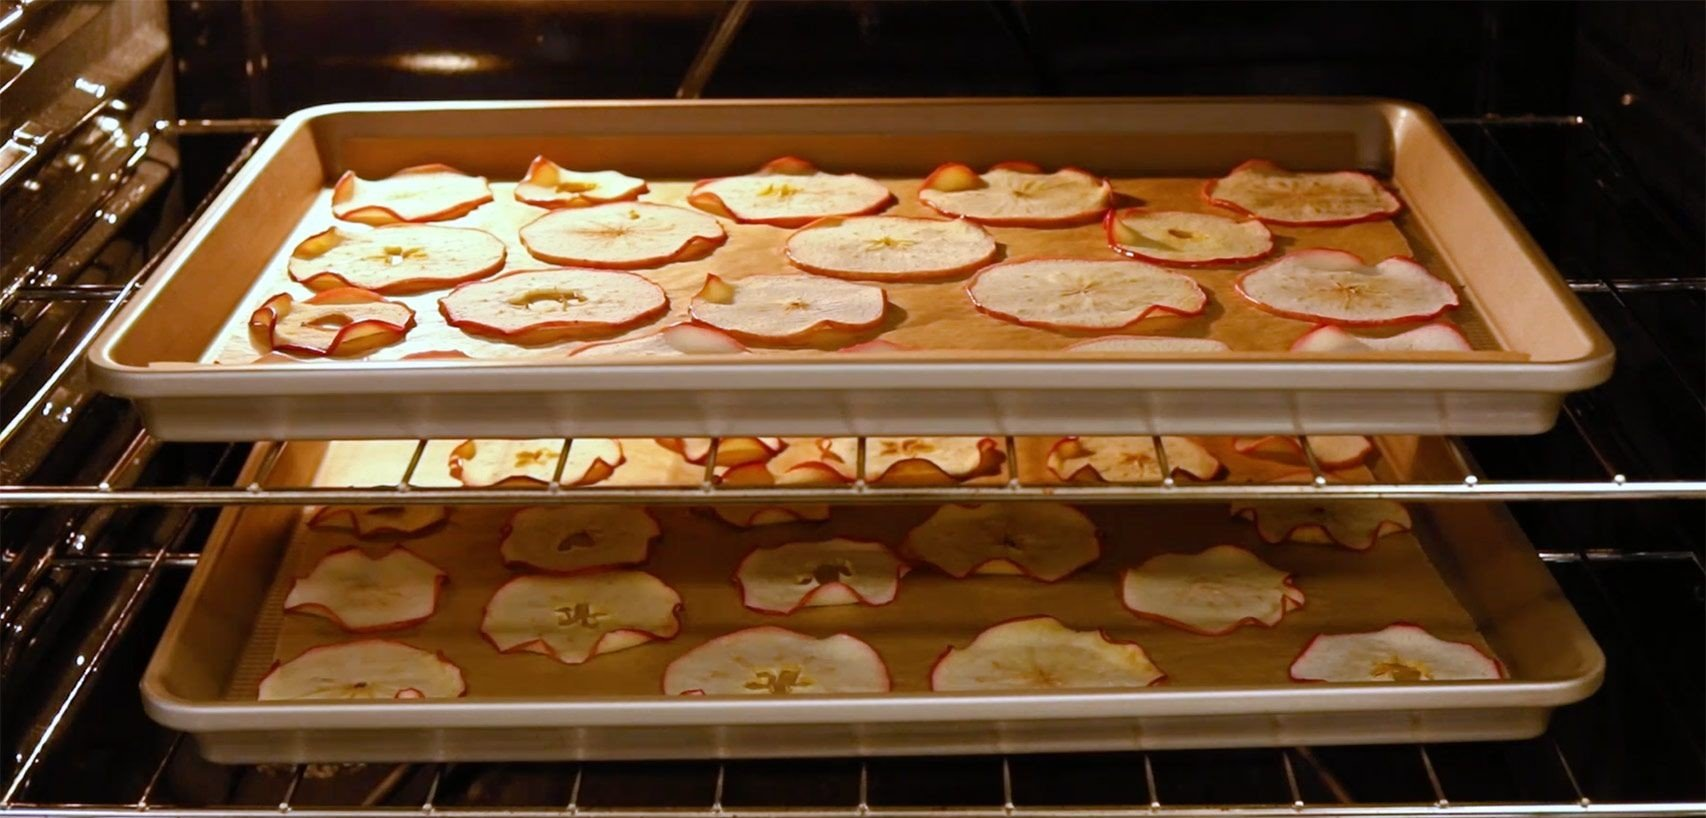 how to dehydrate food in an oven